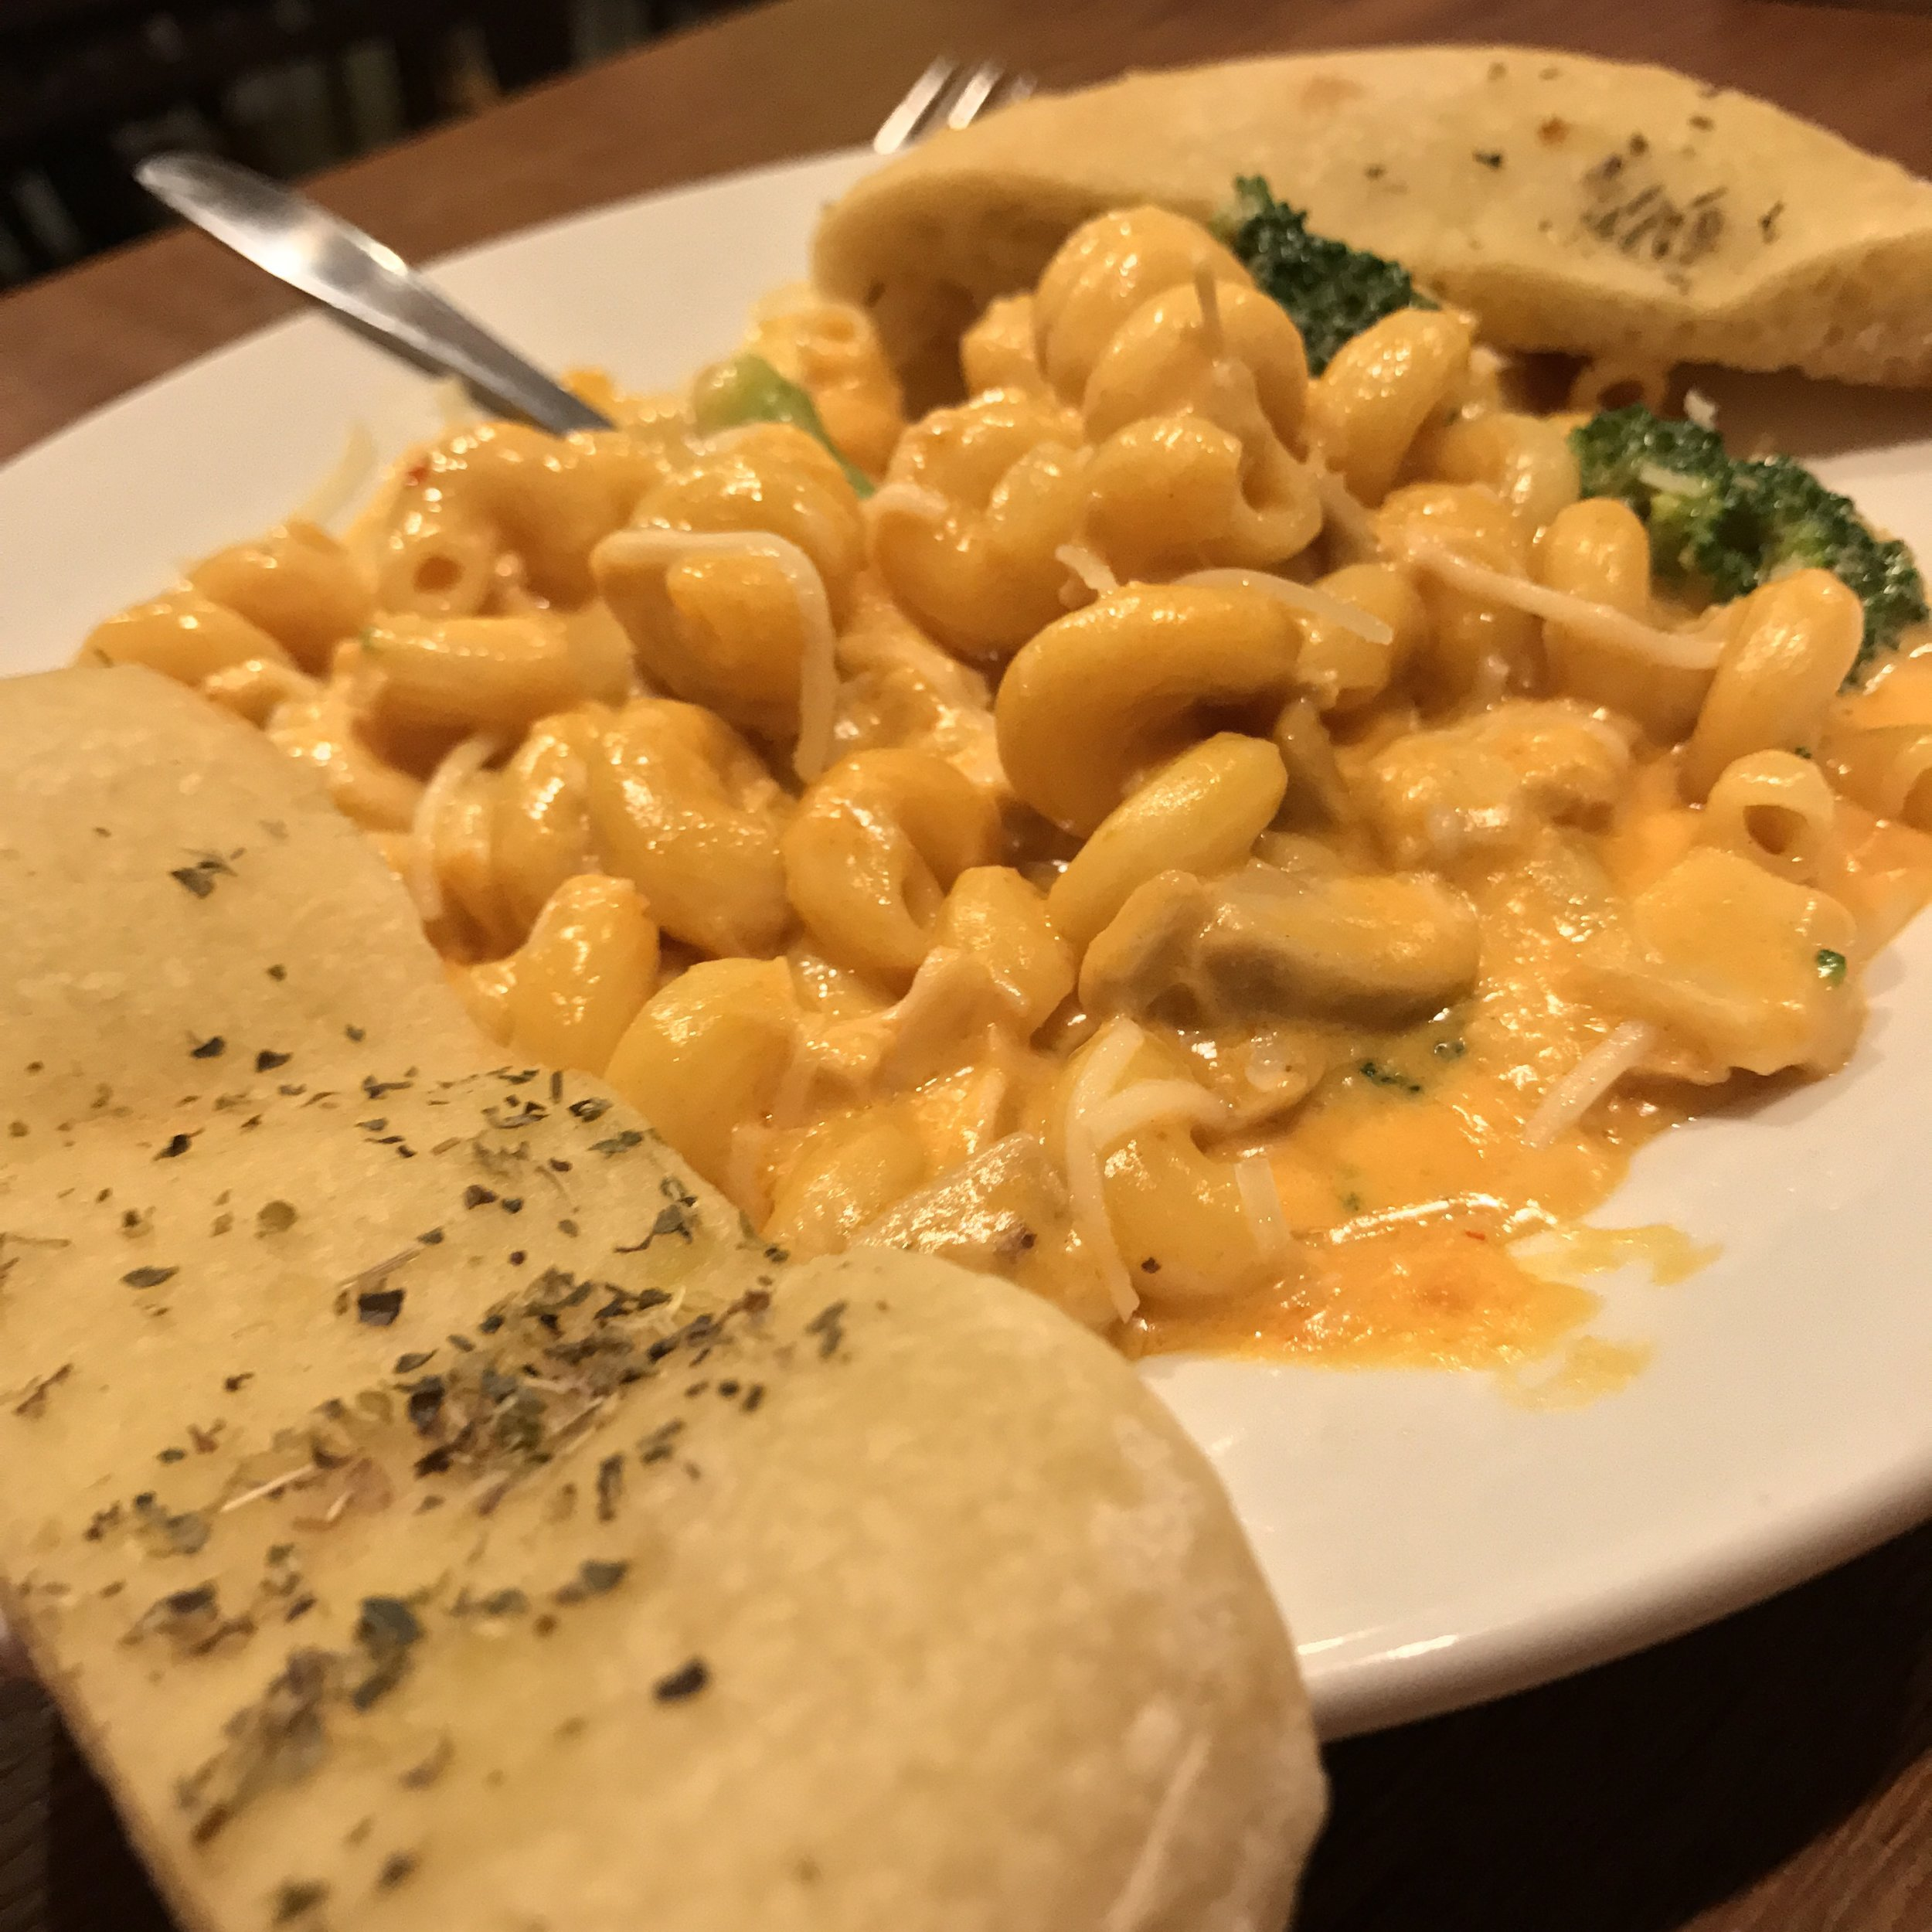 Thai Red Curry Mac'n'Cheese is one of the stars on ABV's Winter specials menu